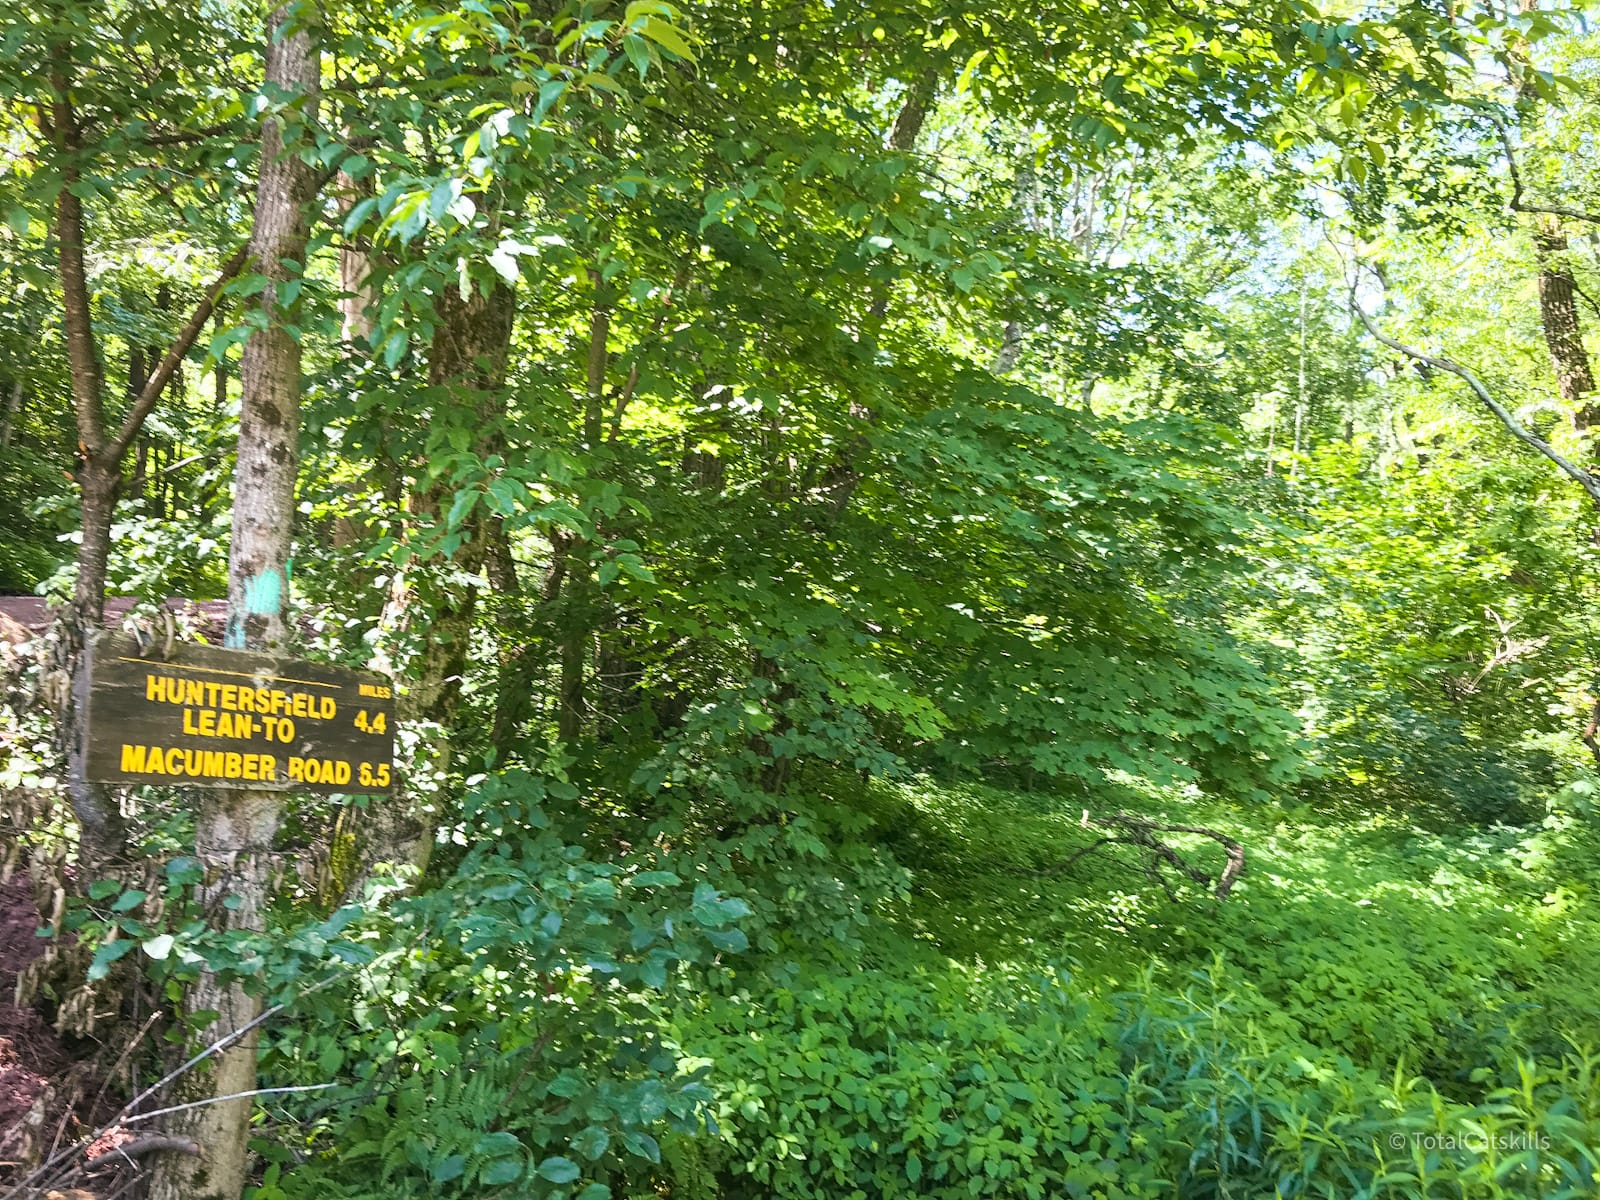 trail signs overgrown